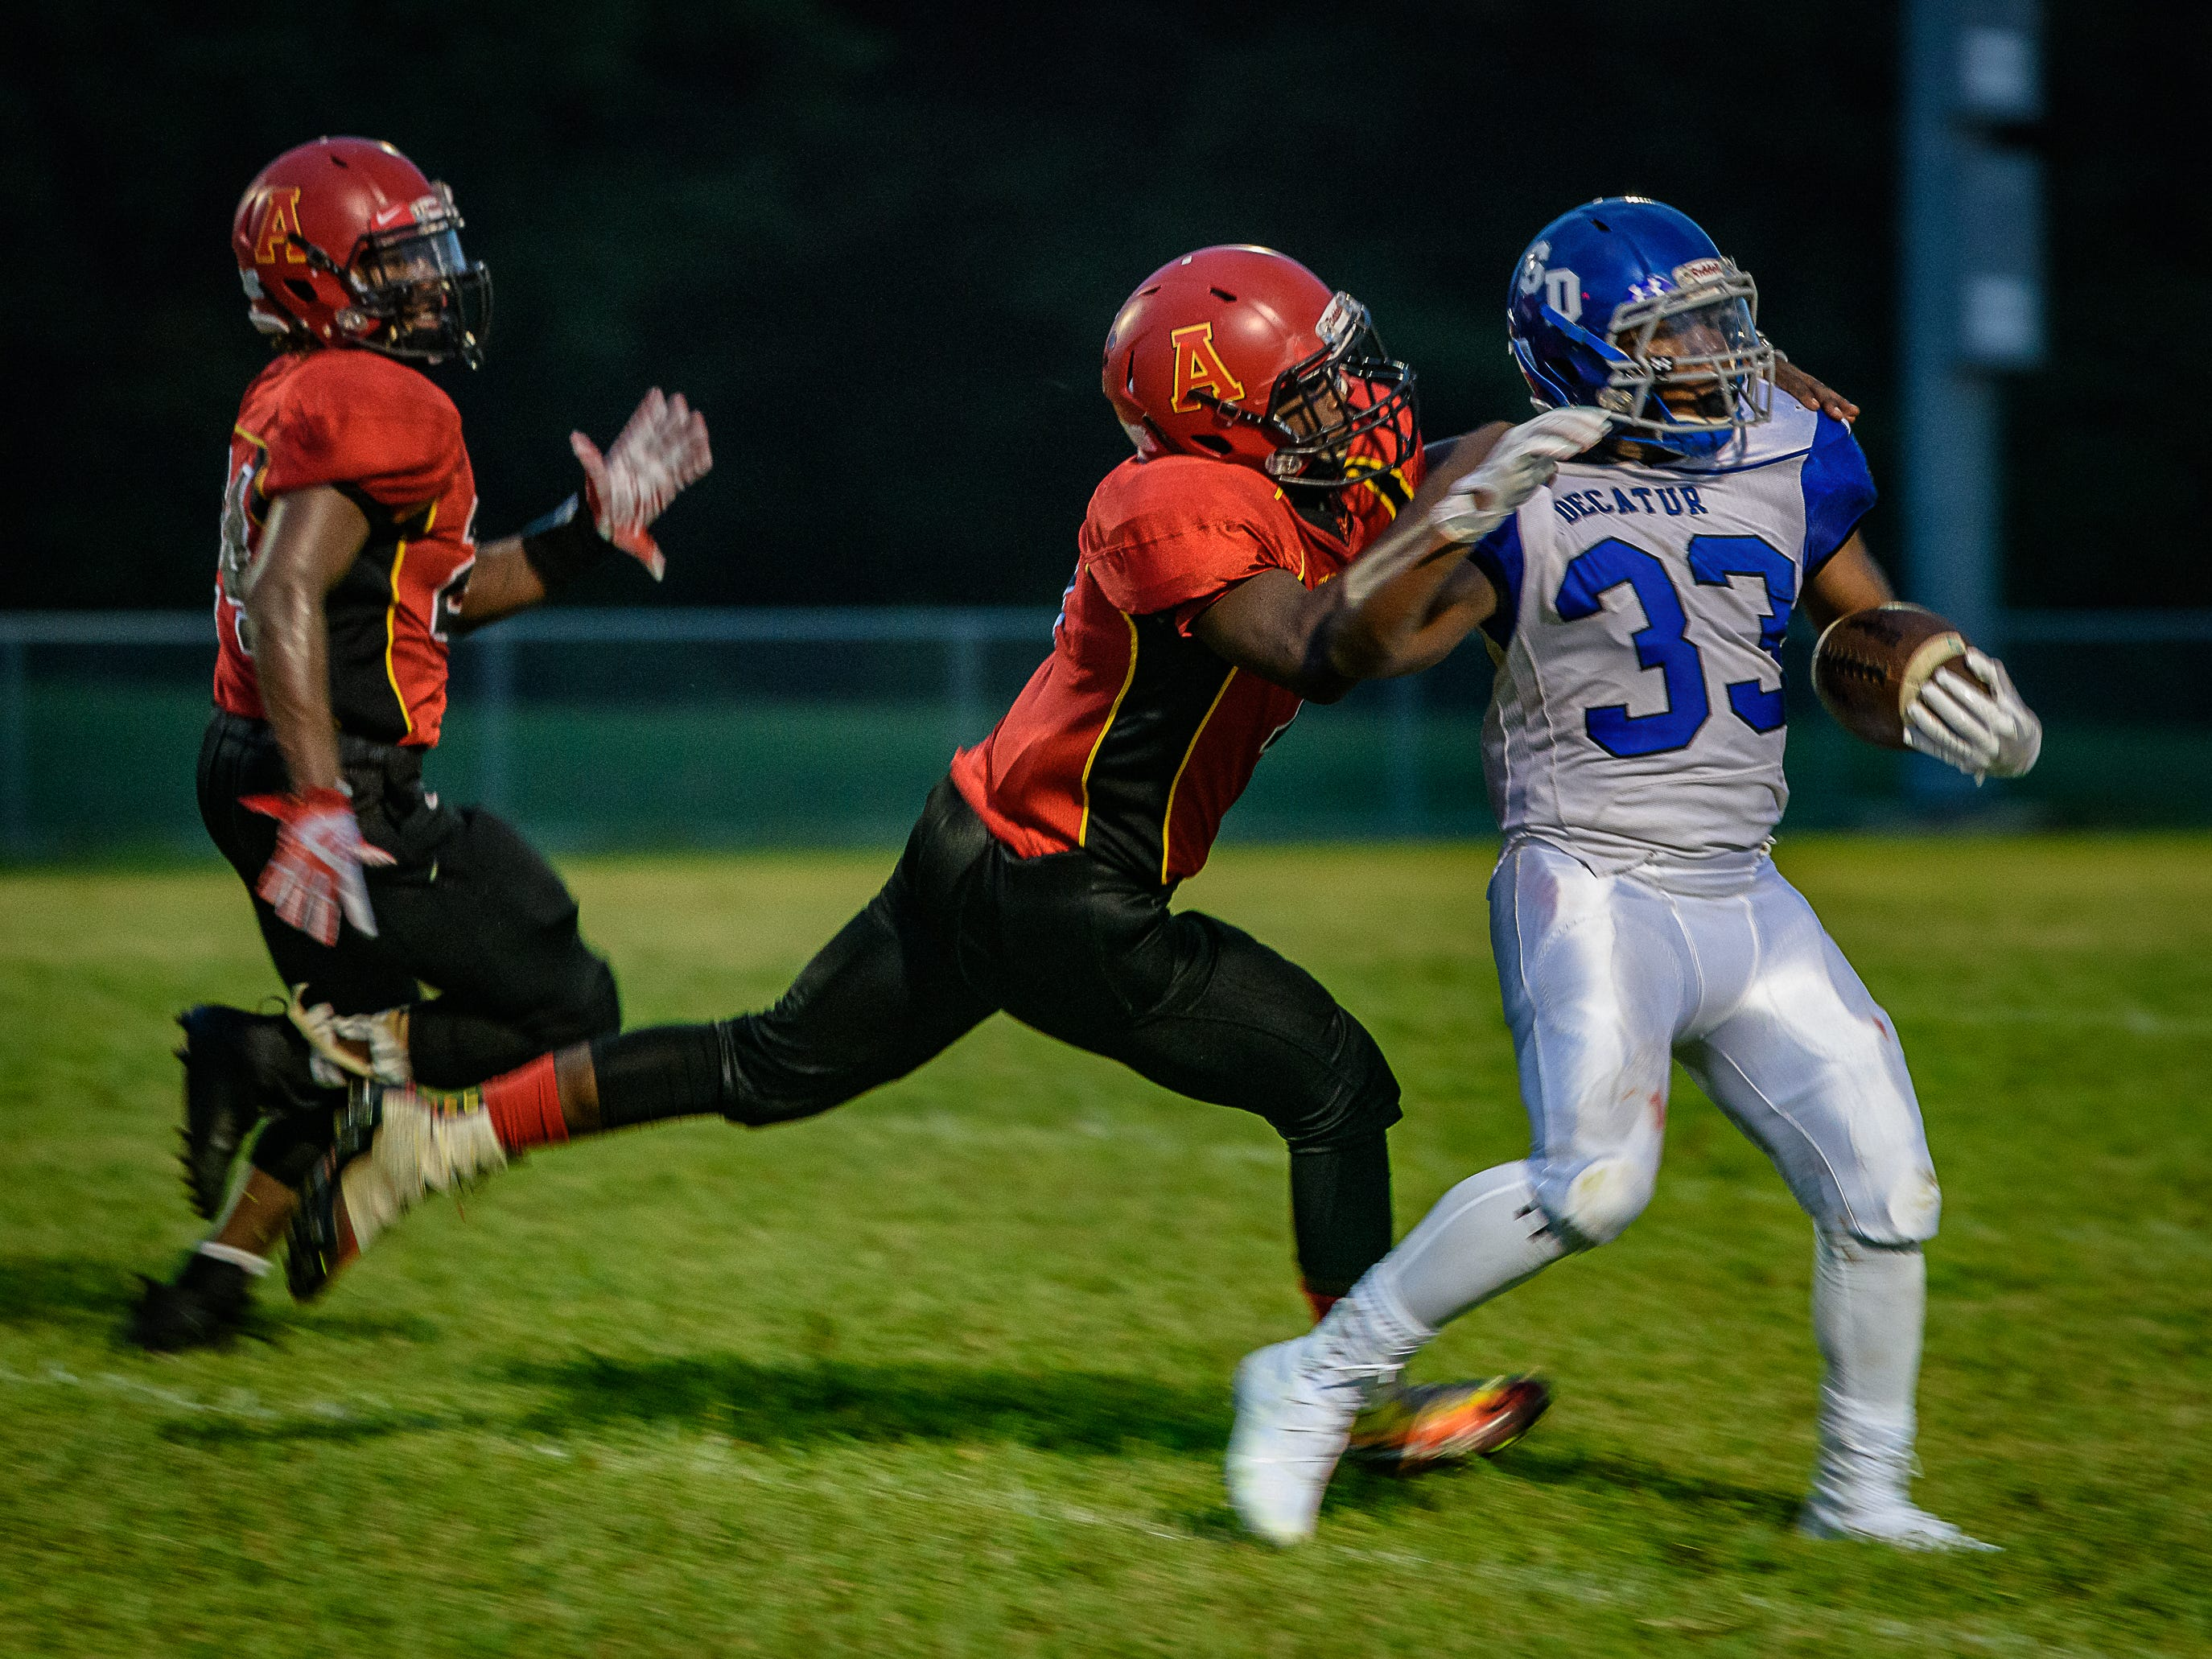 Arcadia's Kam Downing and Bryden Bibbins try to take down Decatur's Devin Waters.